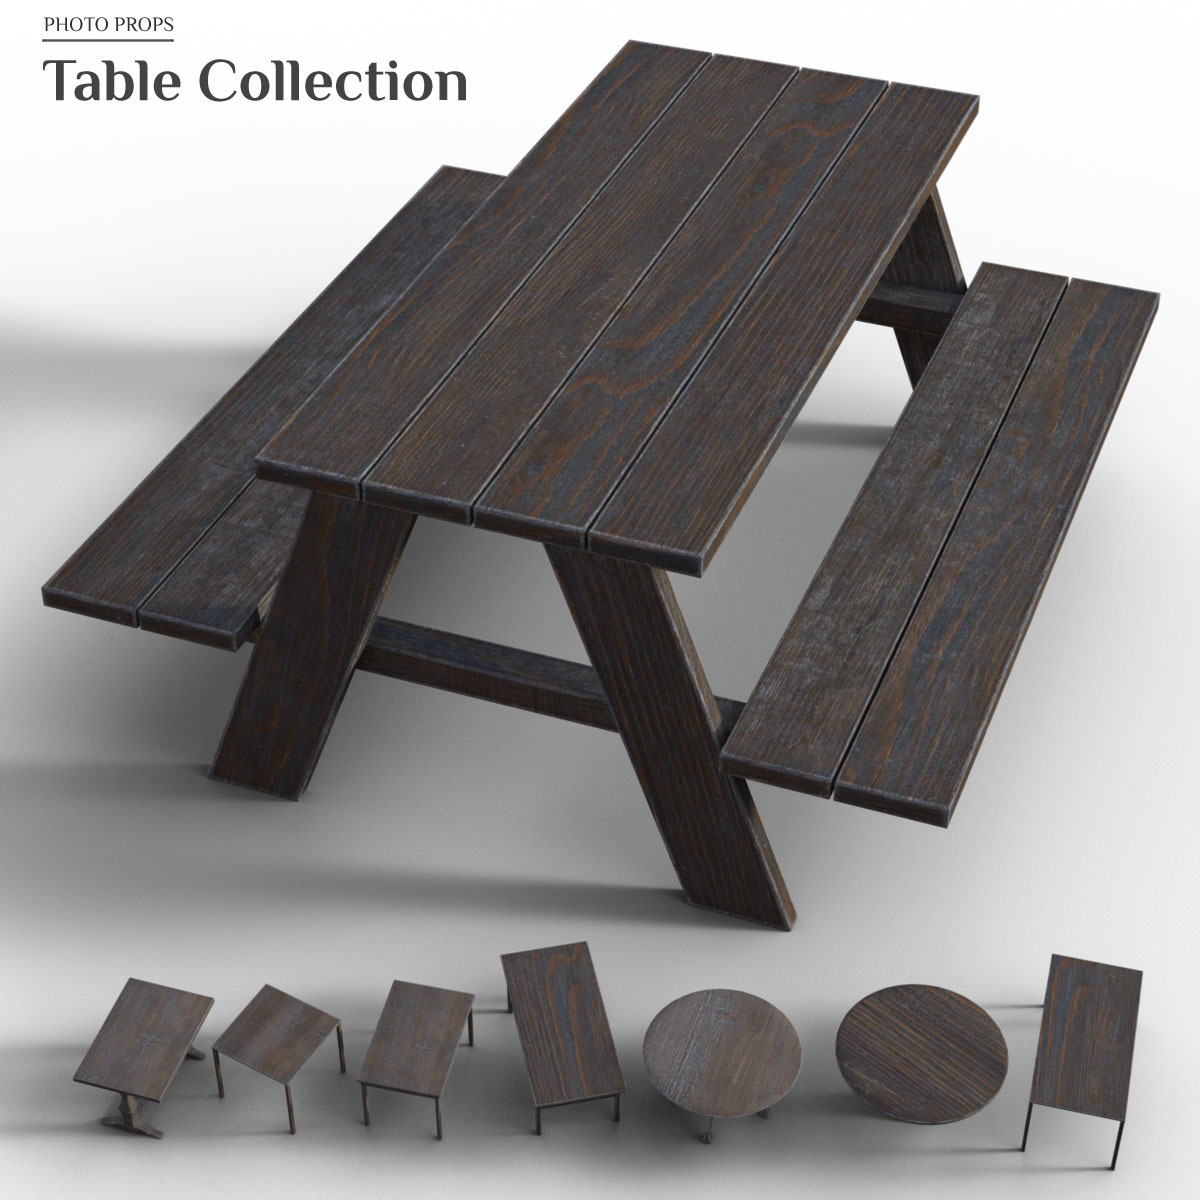 Photo Props: Table Collection - Extended License